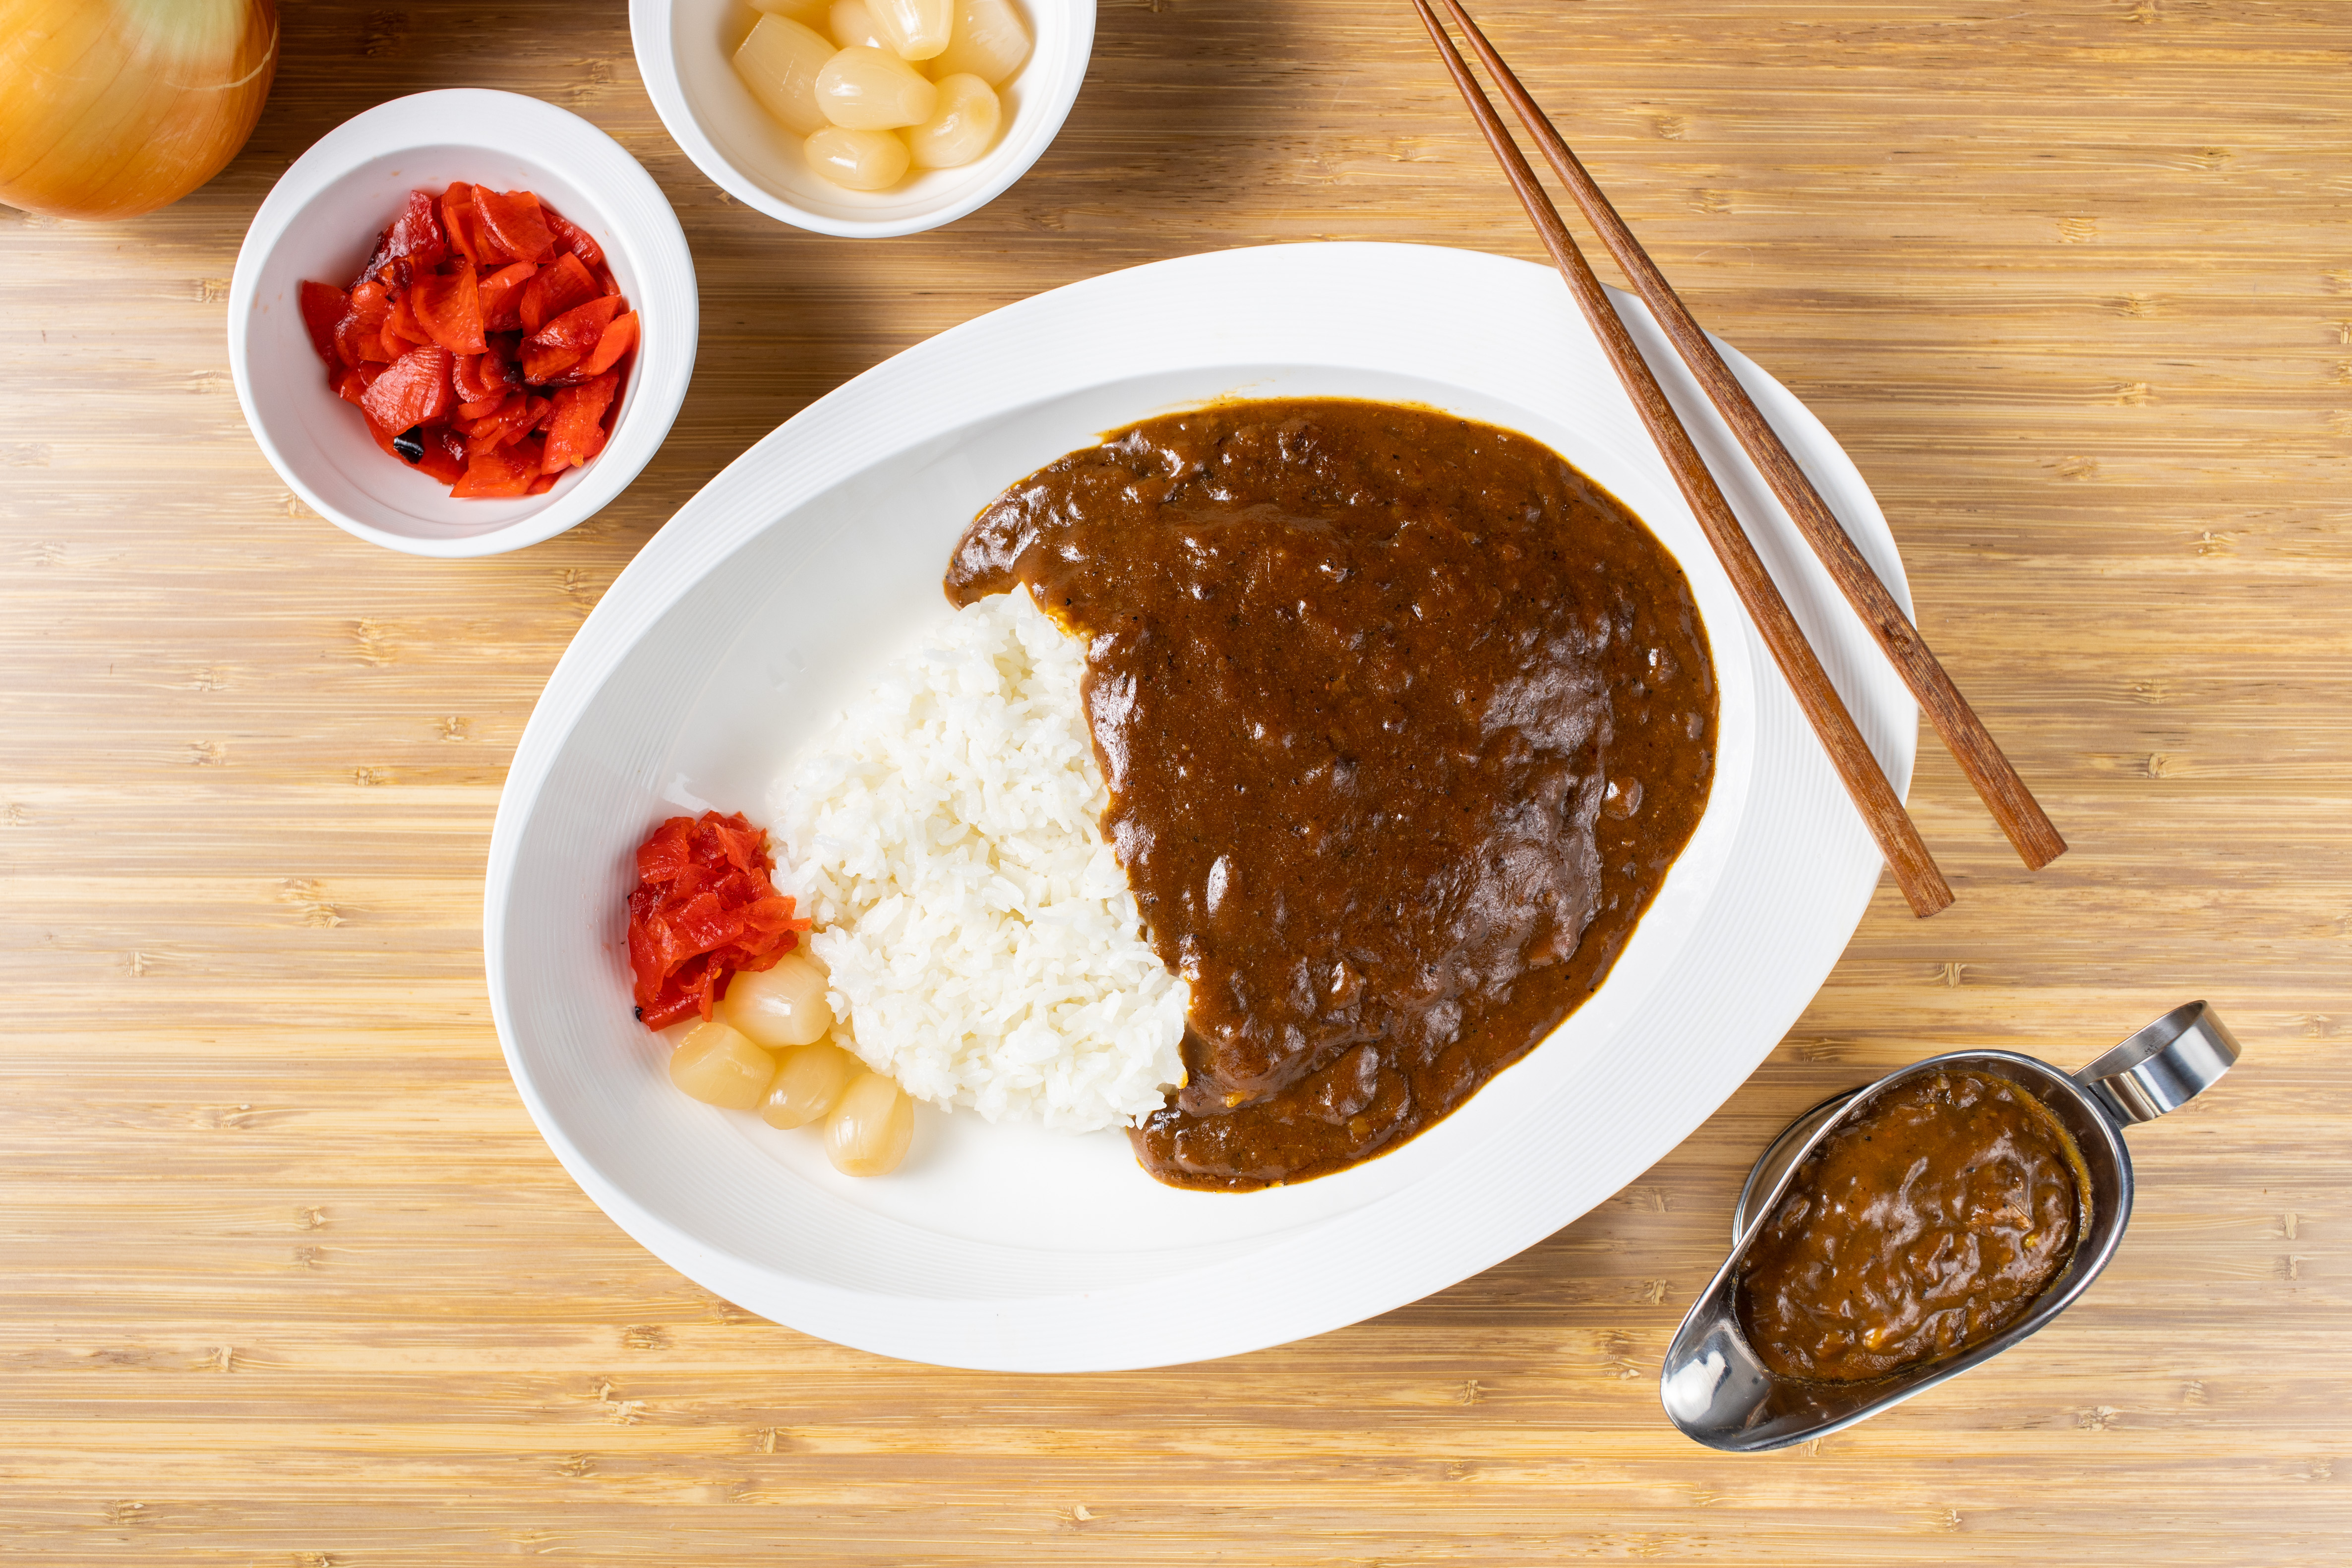 Curry image